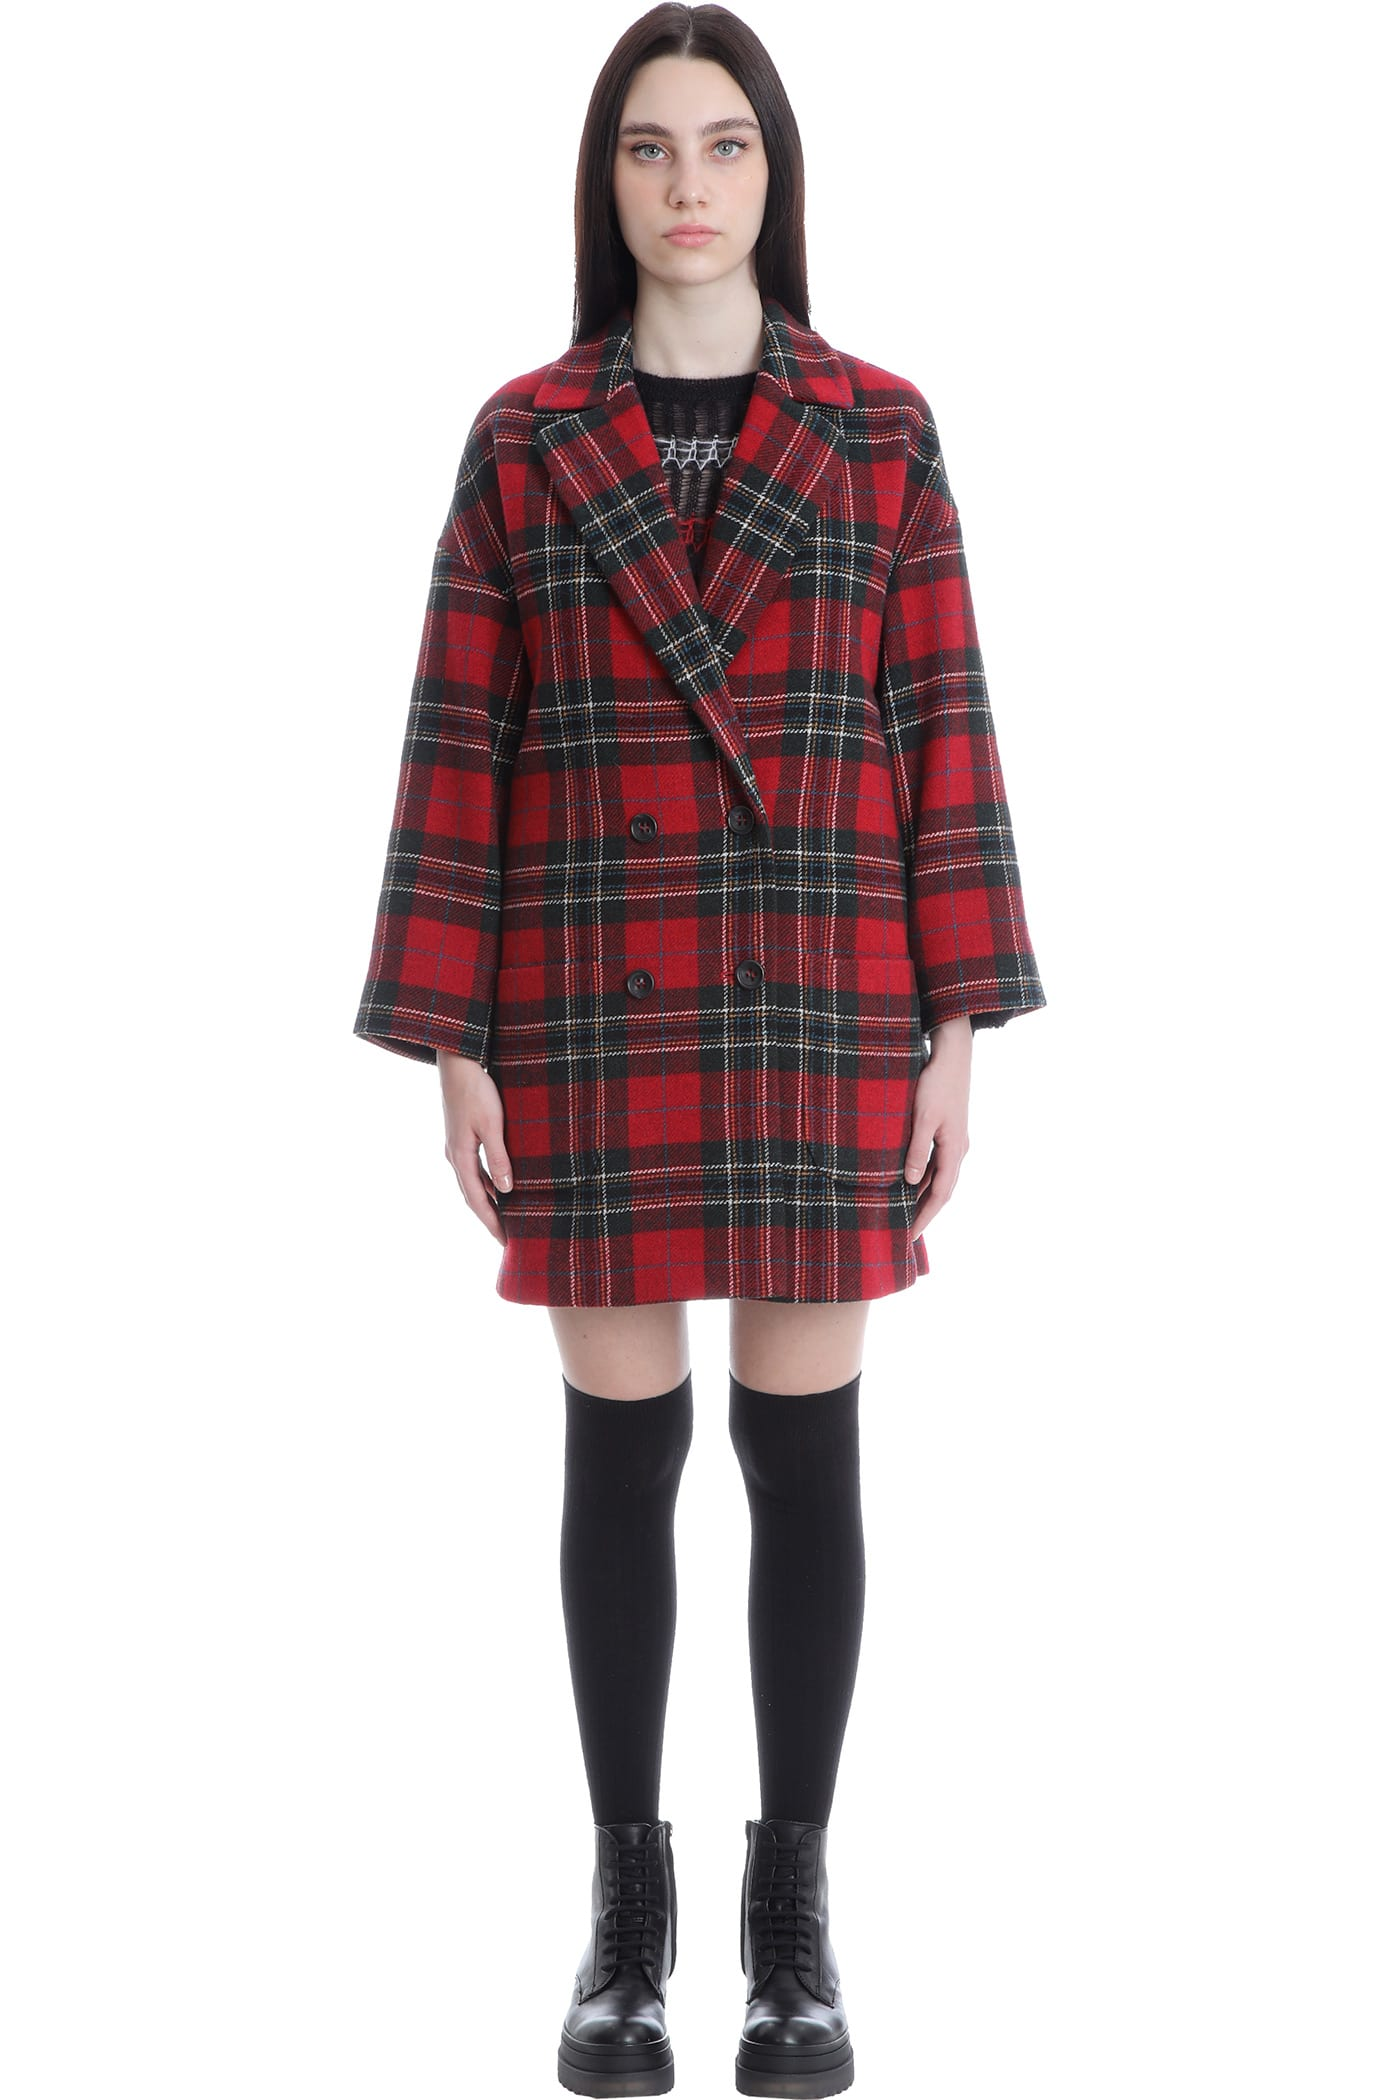 RED Valentino Coat In Red Wool